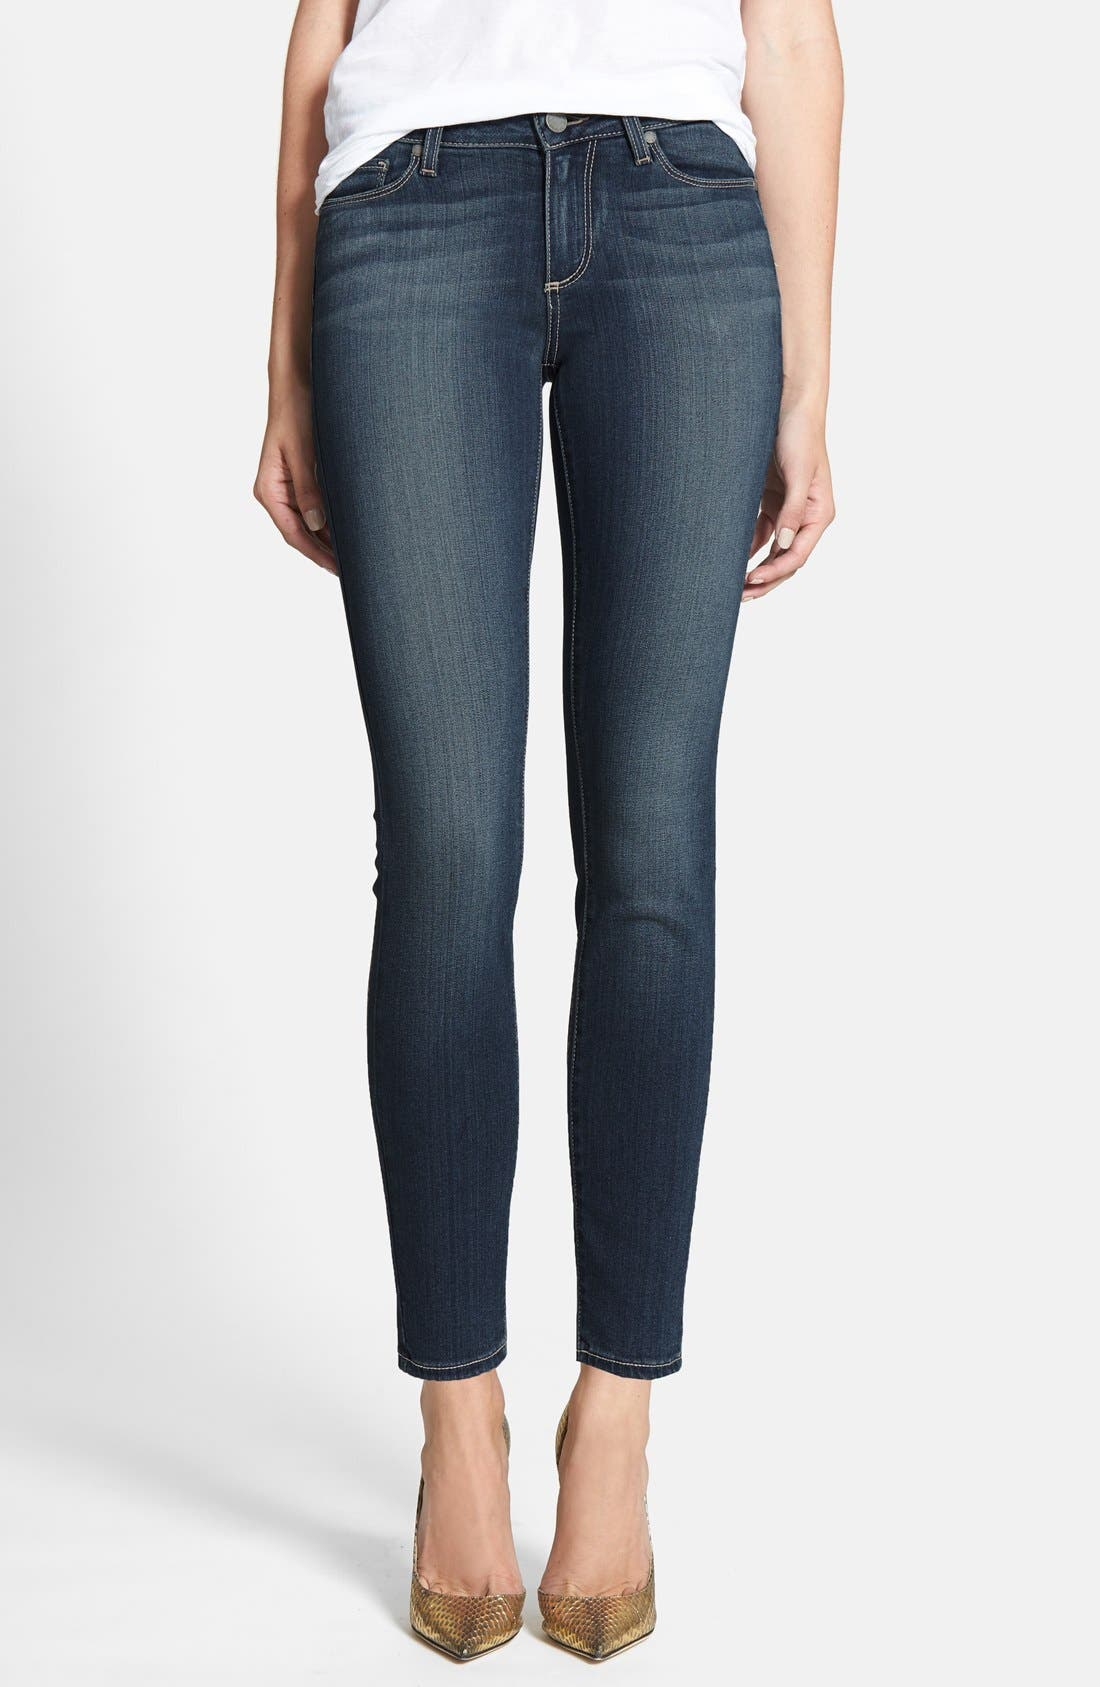 Main Image - PAIGE 'Transcend - Verdugo' Ankle Skinny Jeans (Easton)